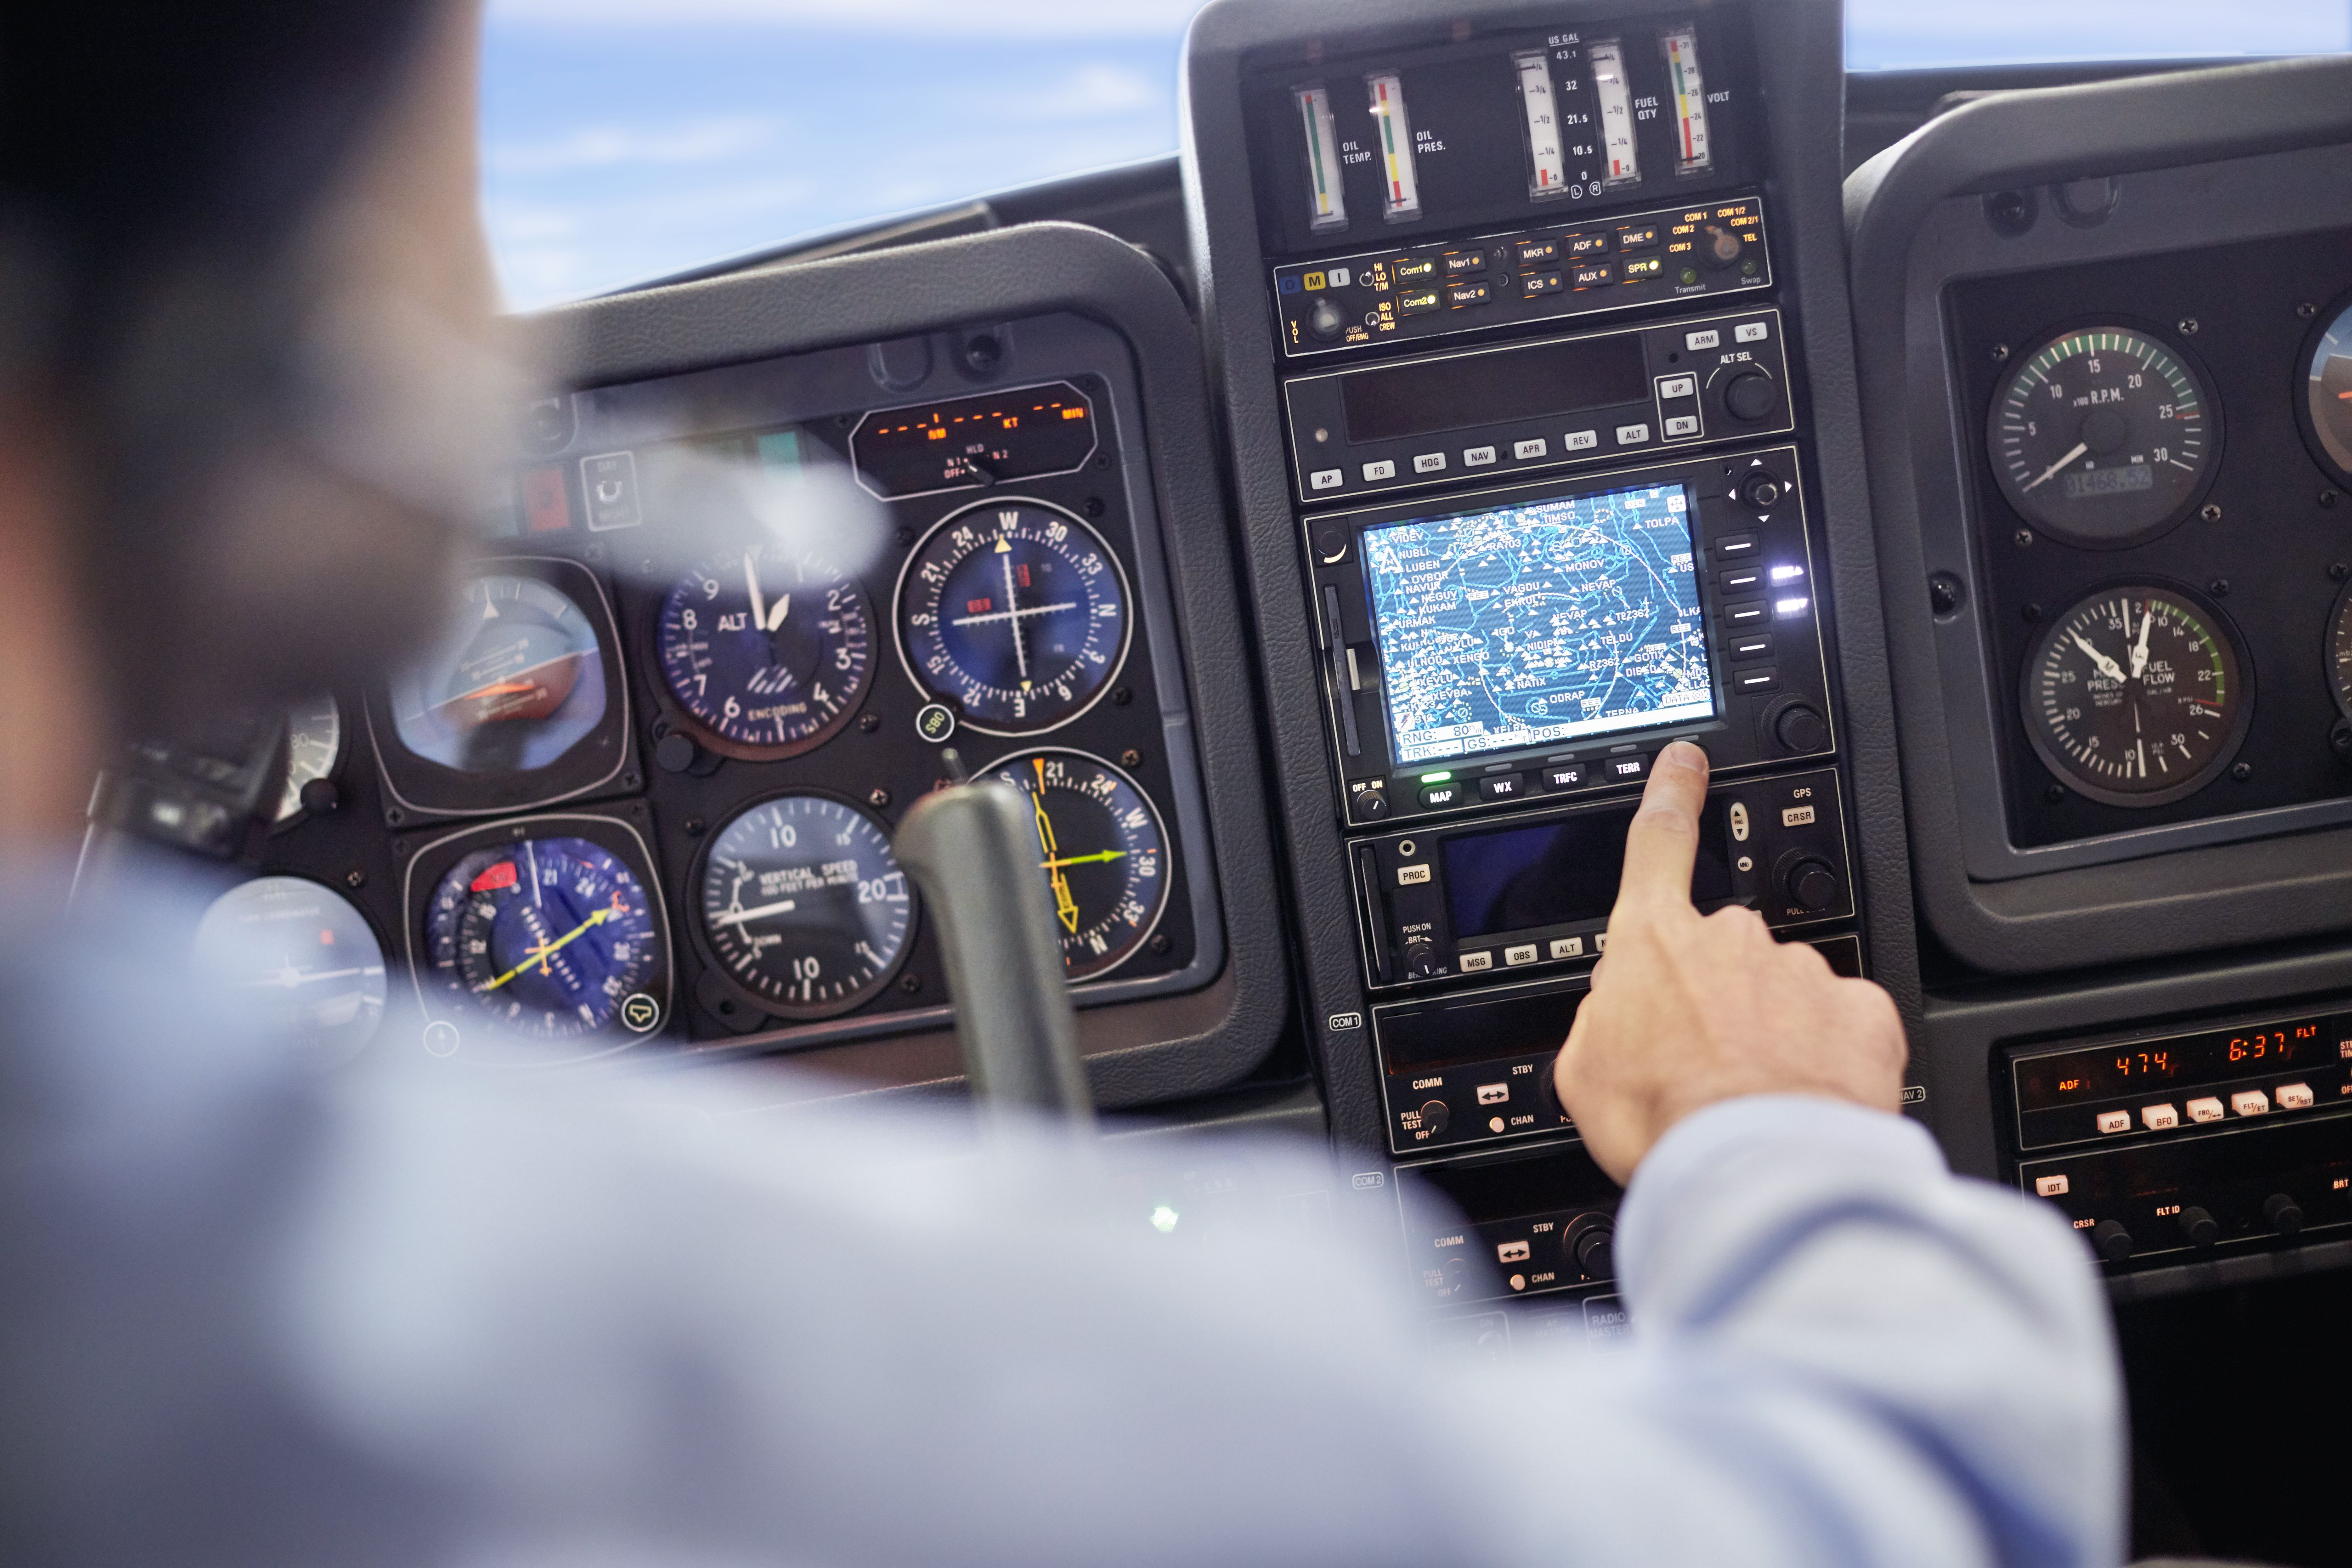 male pilot using navigational instruments in airplane cockpit 5b50e6c846e0fb005b7d7024